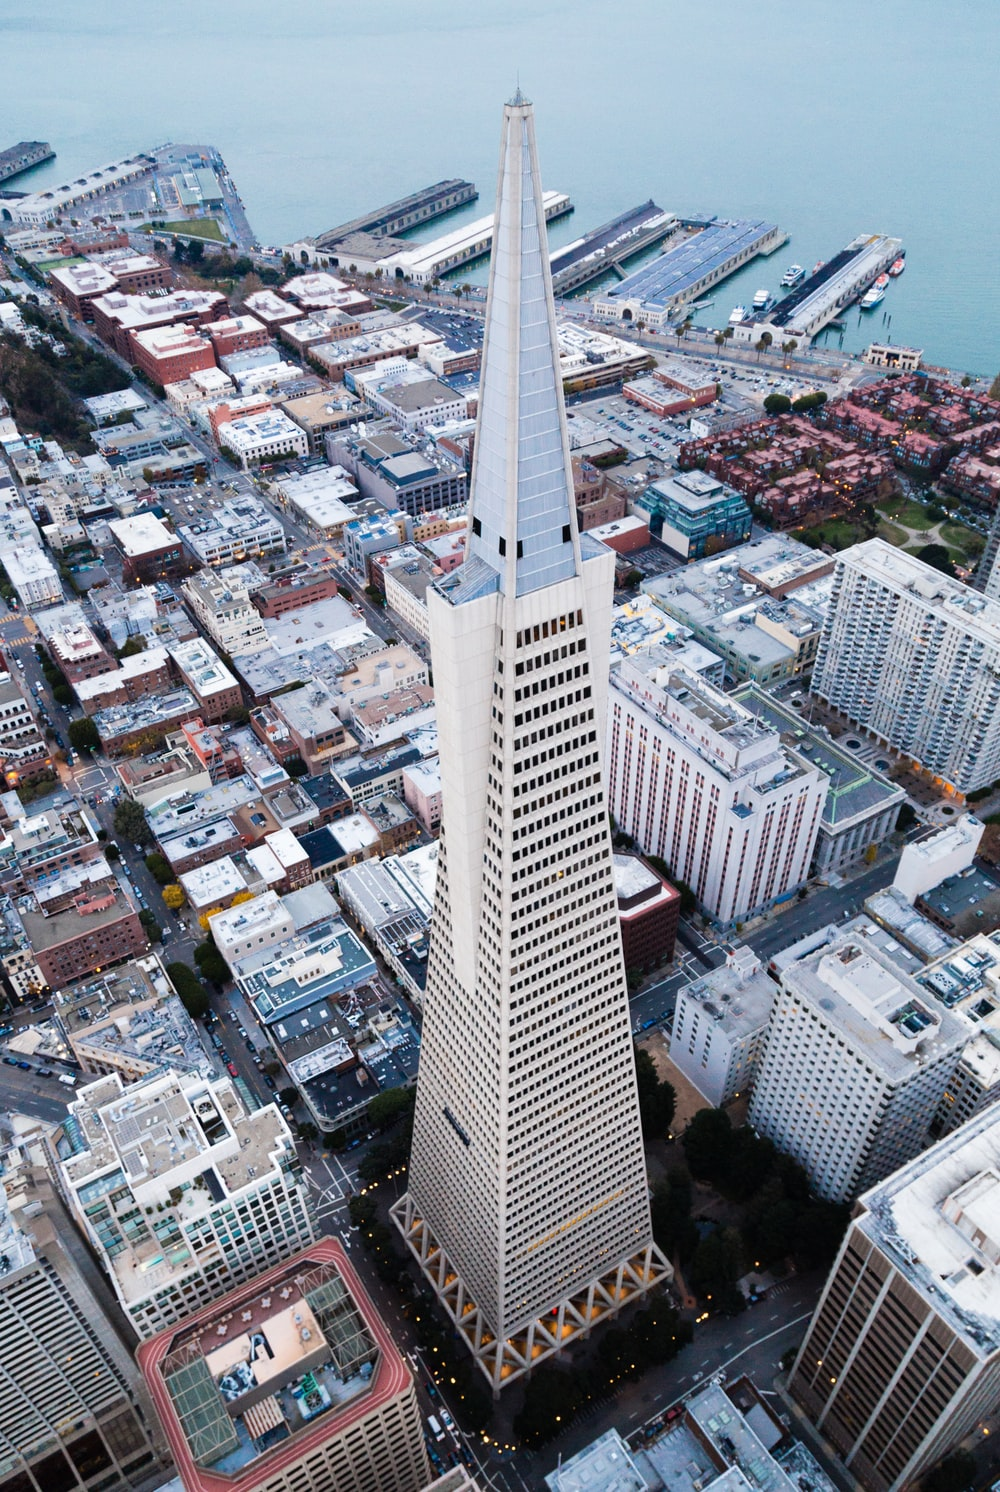 birds eye view of white and gray tower